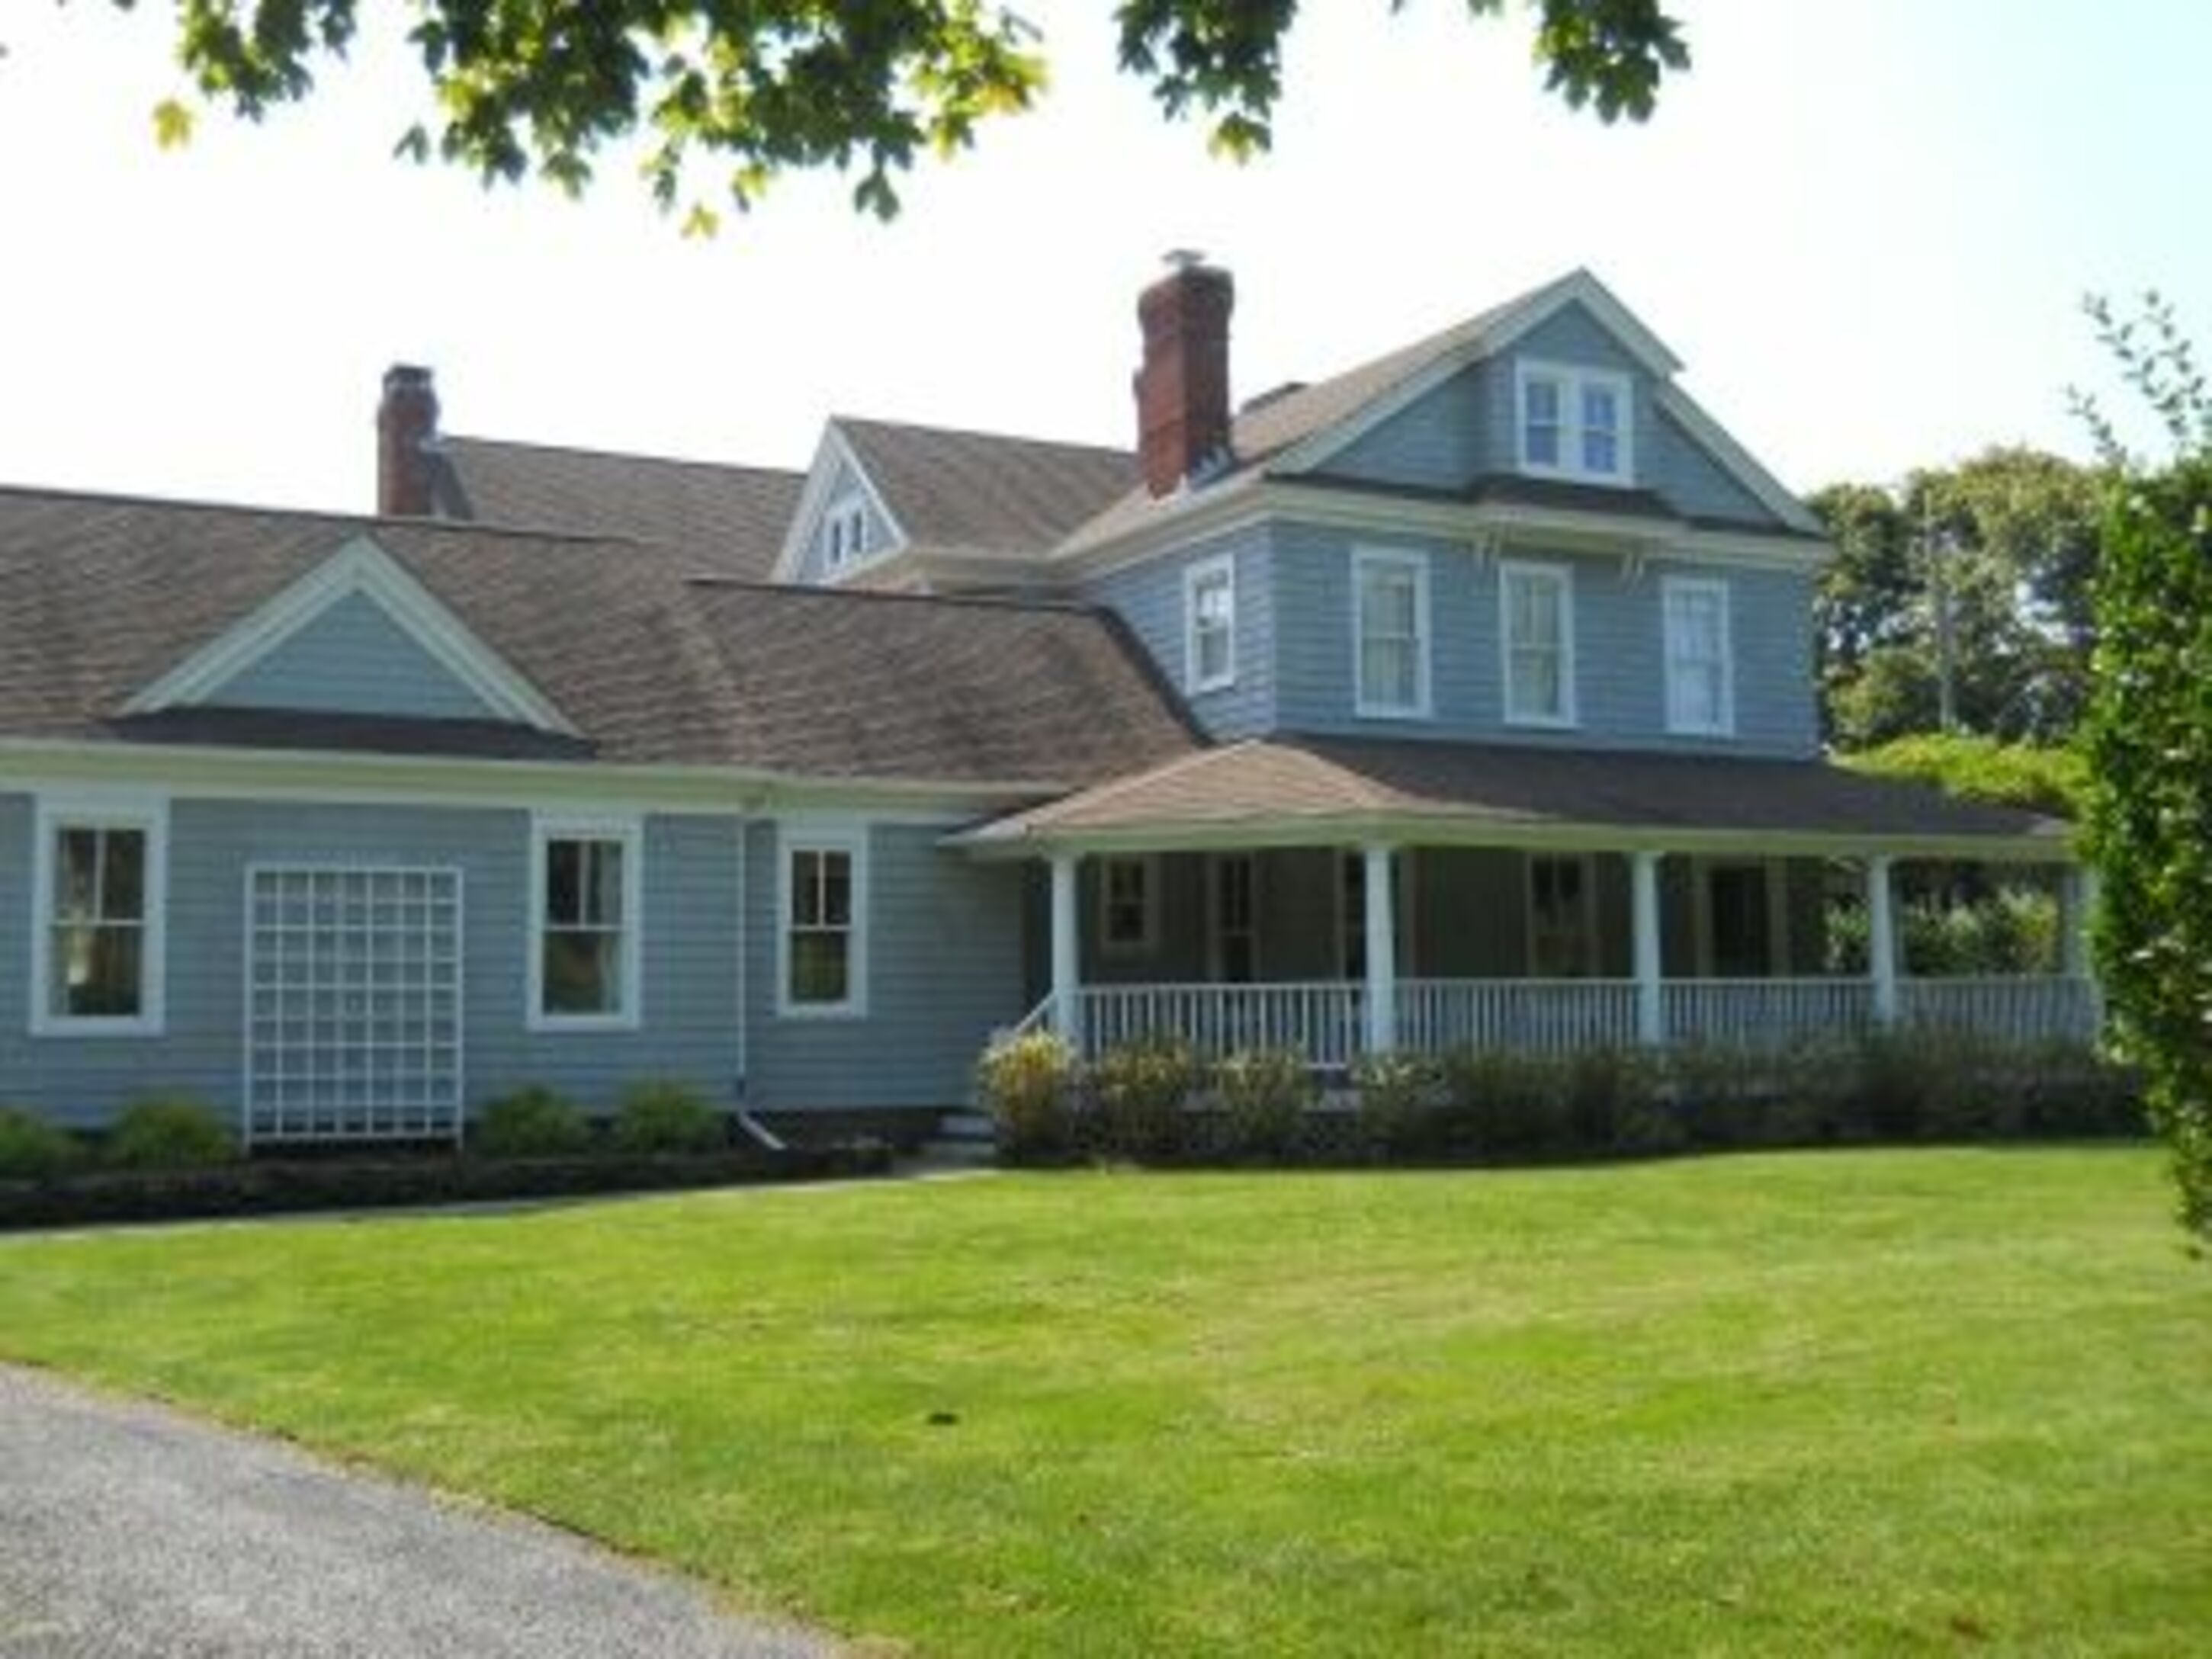 55 Quogue St - Quogue South, New York